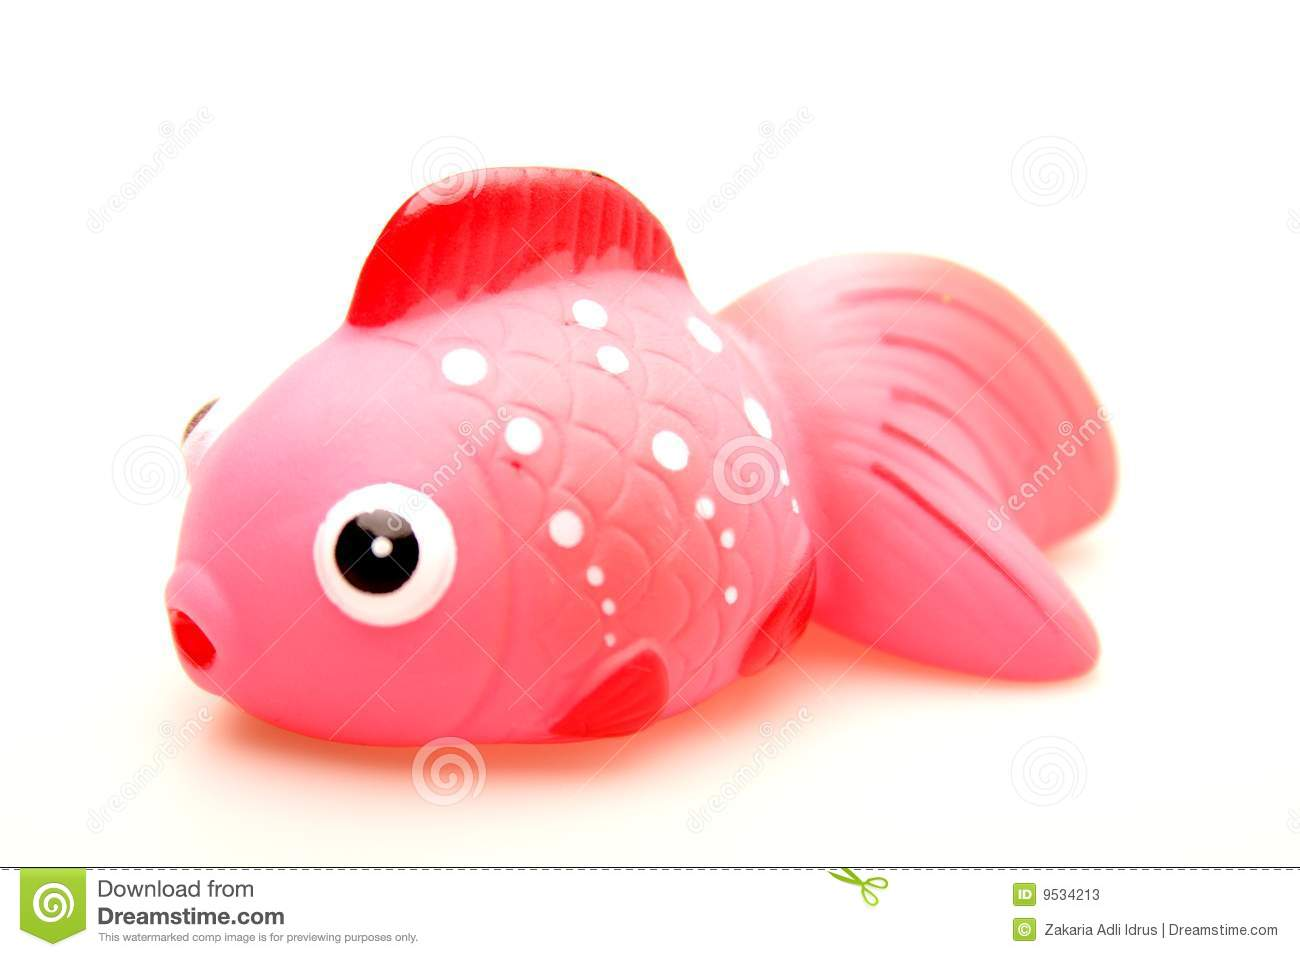 Toy red rubber fish stock image image of fish babies for Rubber fish toy